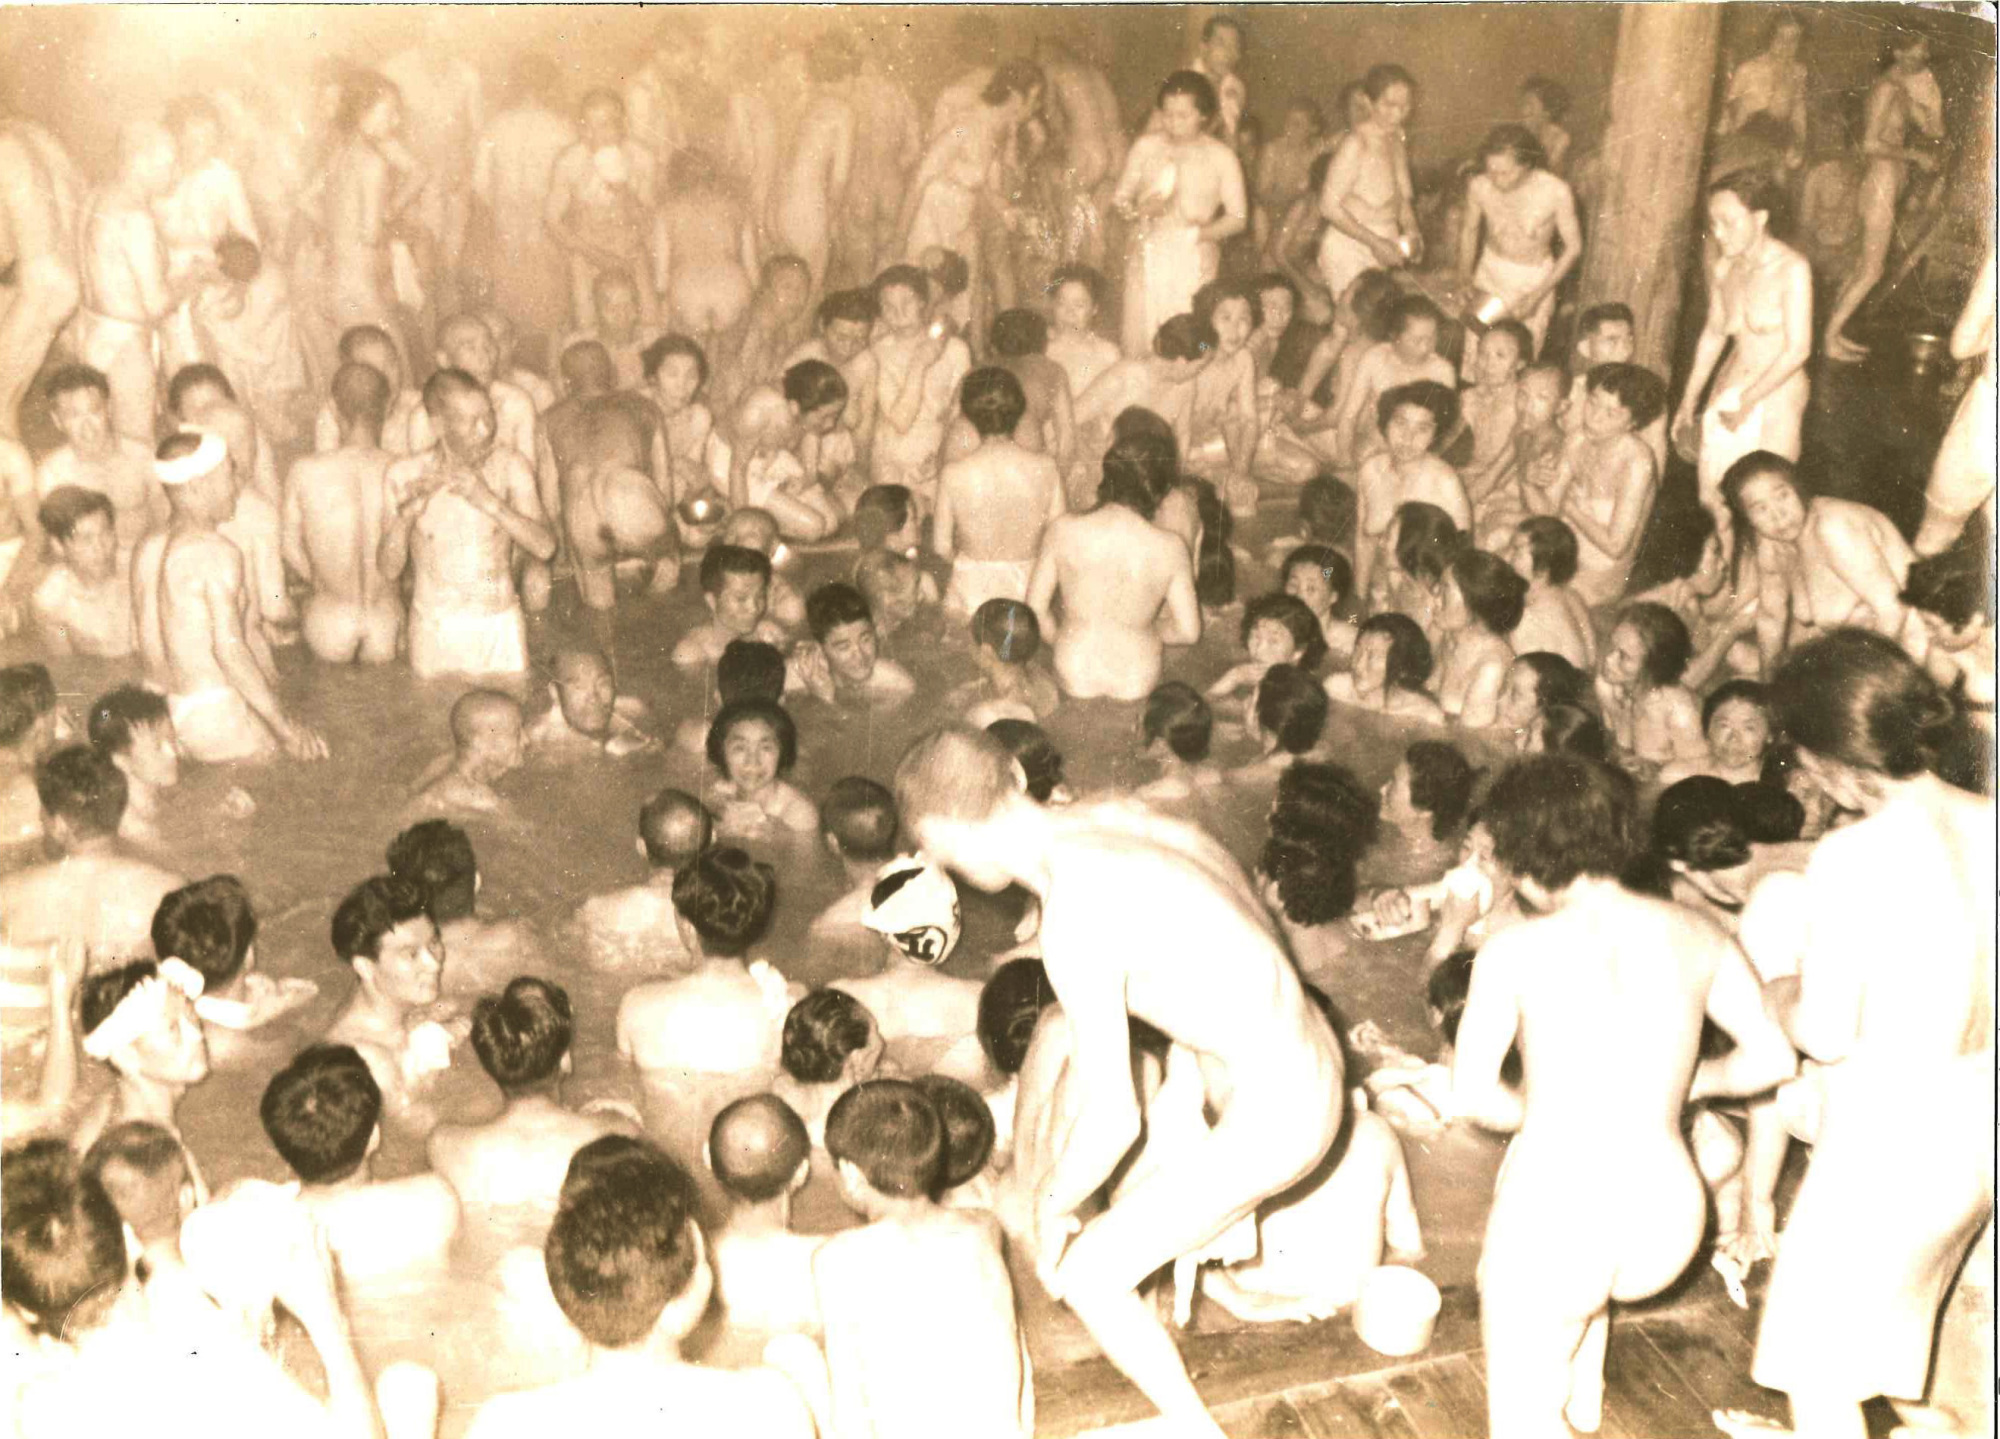 Last splash: Immodest Japanese tradition of mixed bathing may be on the  verge of extinction   The Japan Times